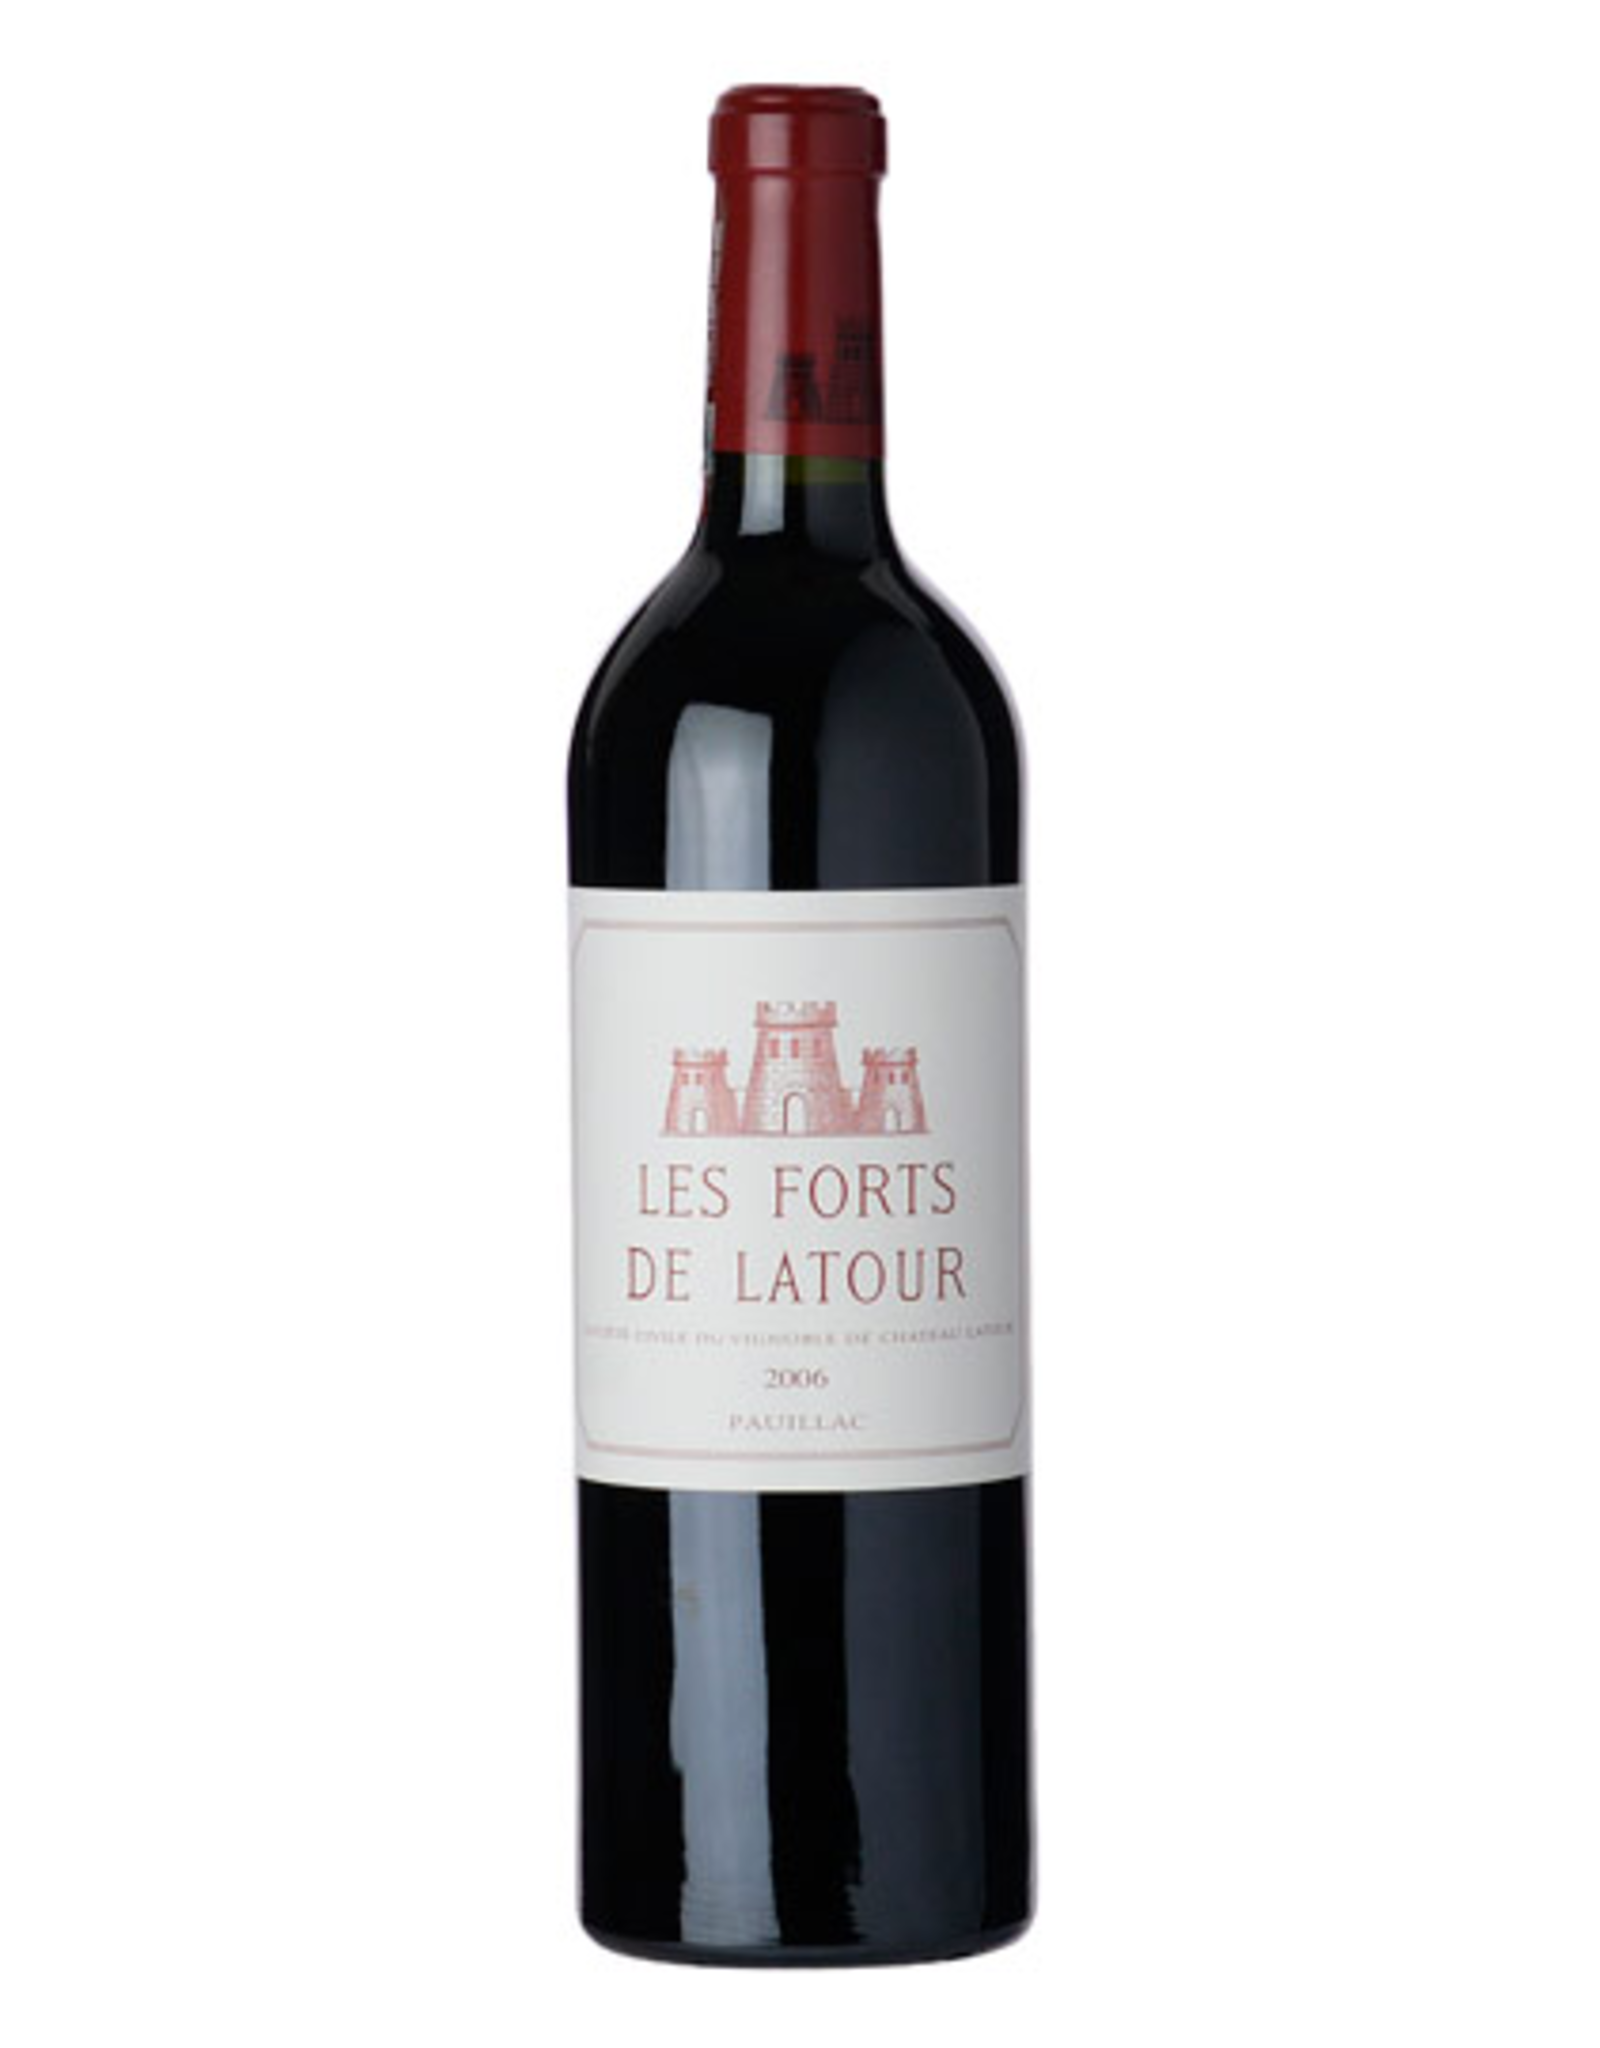 Red Wine 2006, Les Forts de Latour 1st Growth 2nd Grand Cru, Red Bordeaux Blend, Pauillac, Bordeaux, France, 14% Alc, CT91, RP92